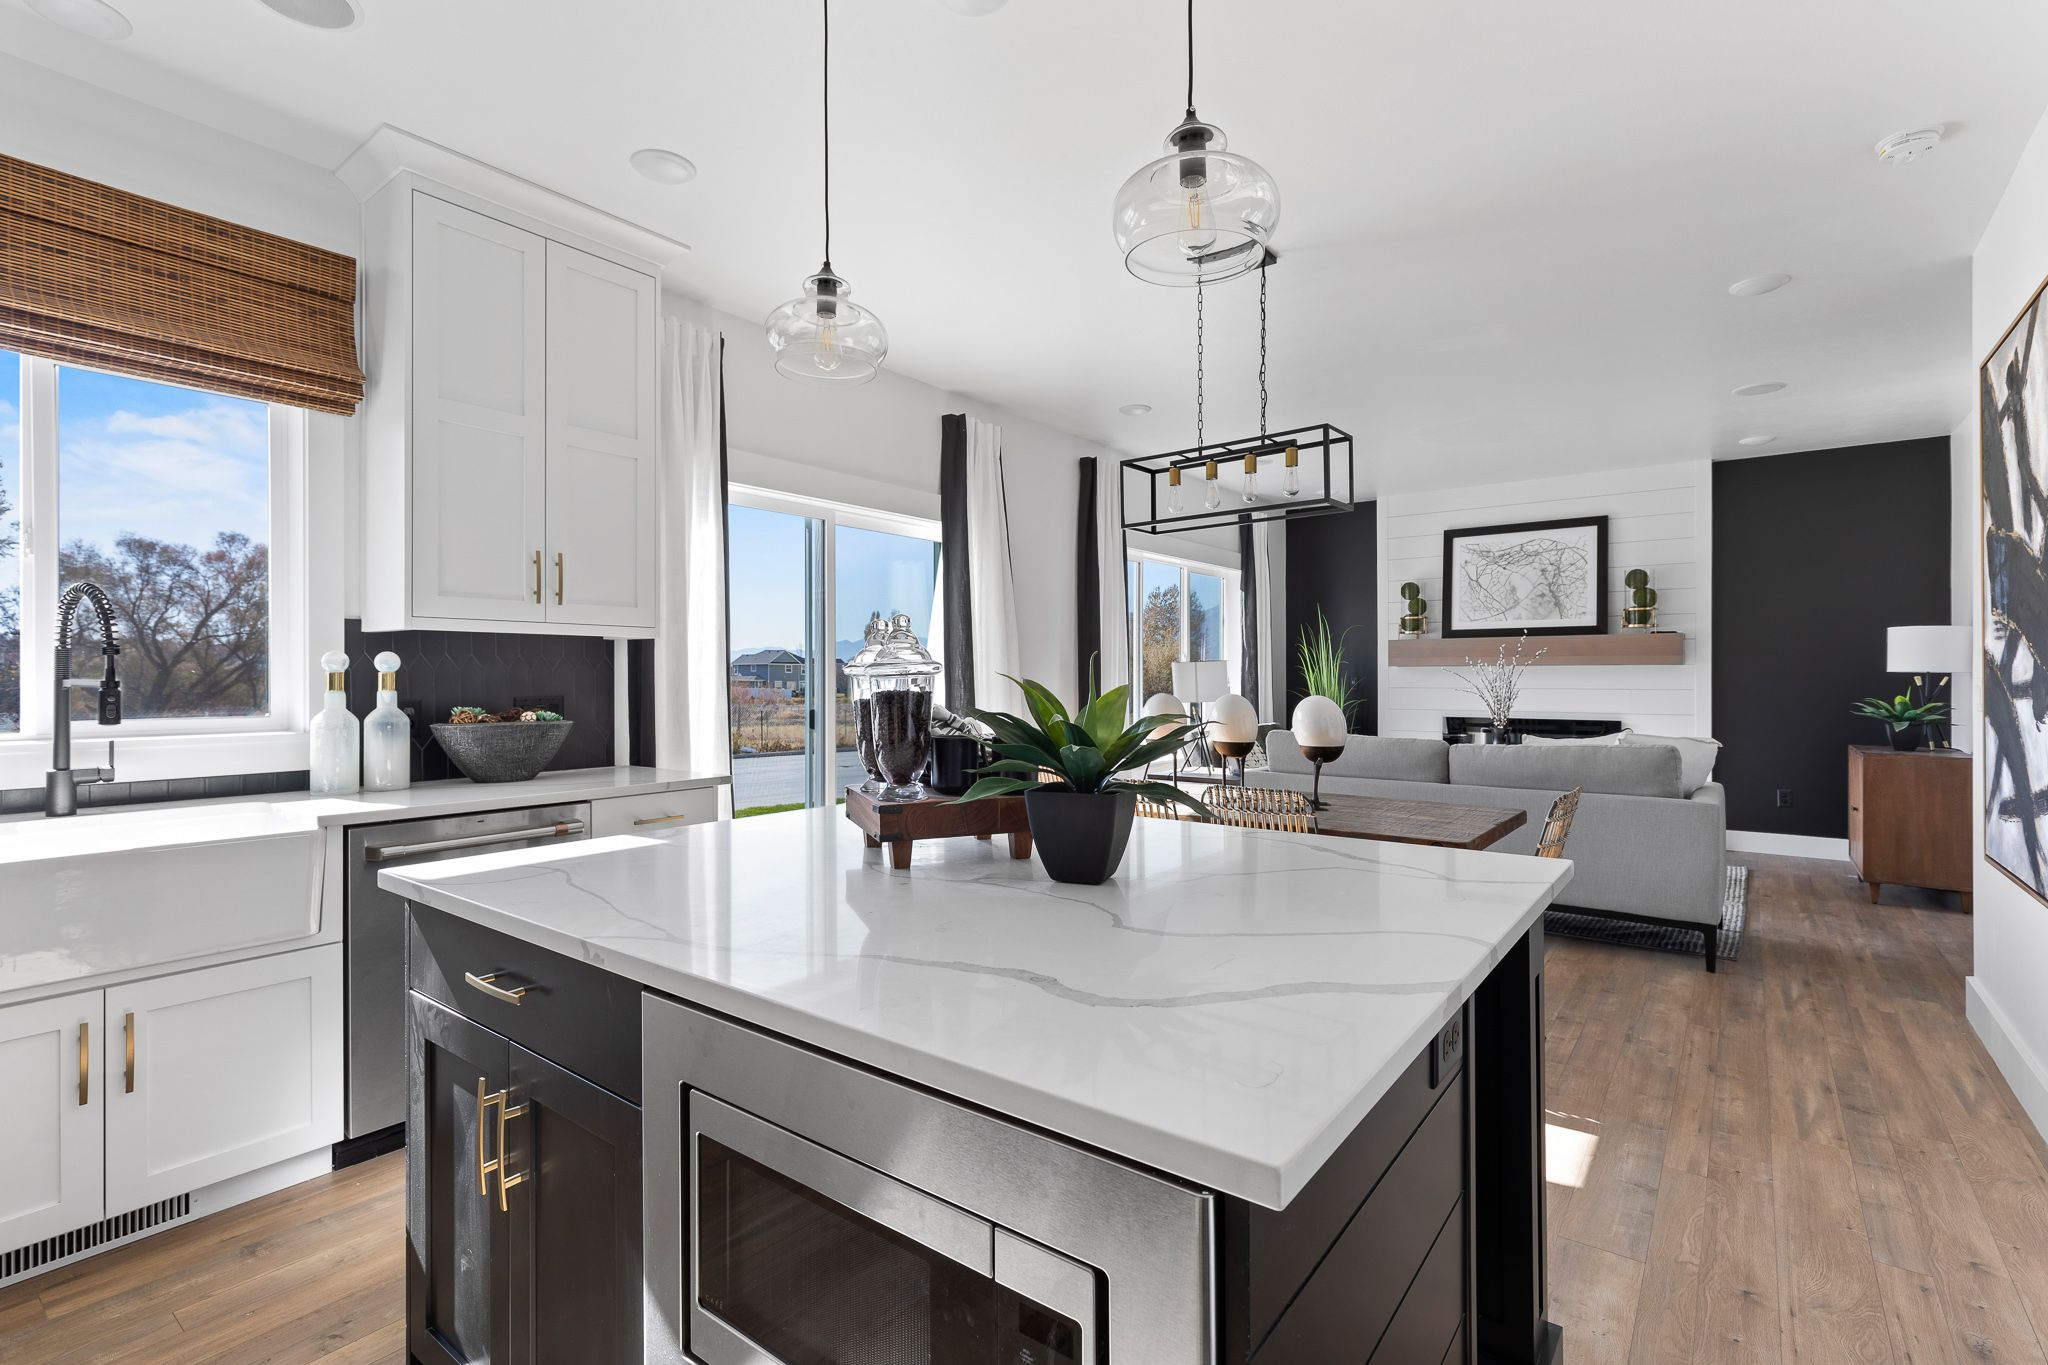 Kitchen featured in the Madison (Basement) By Visionary Homes in Logan, UT